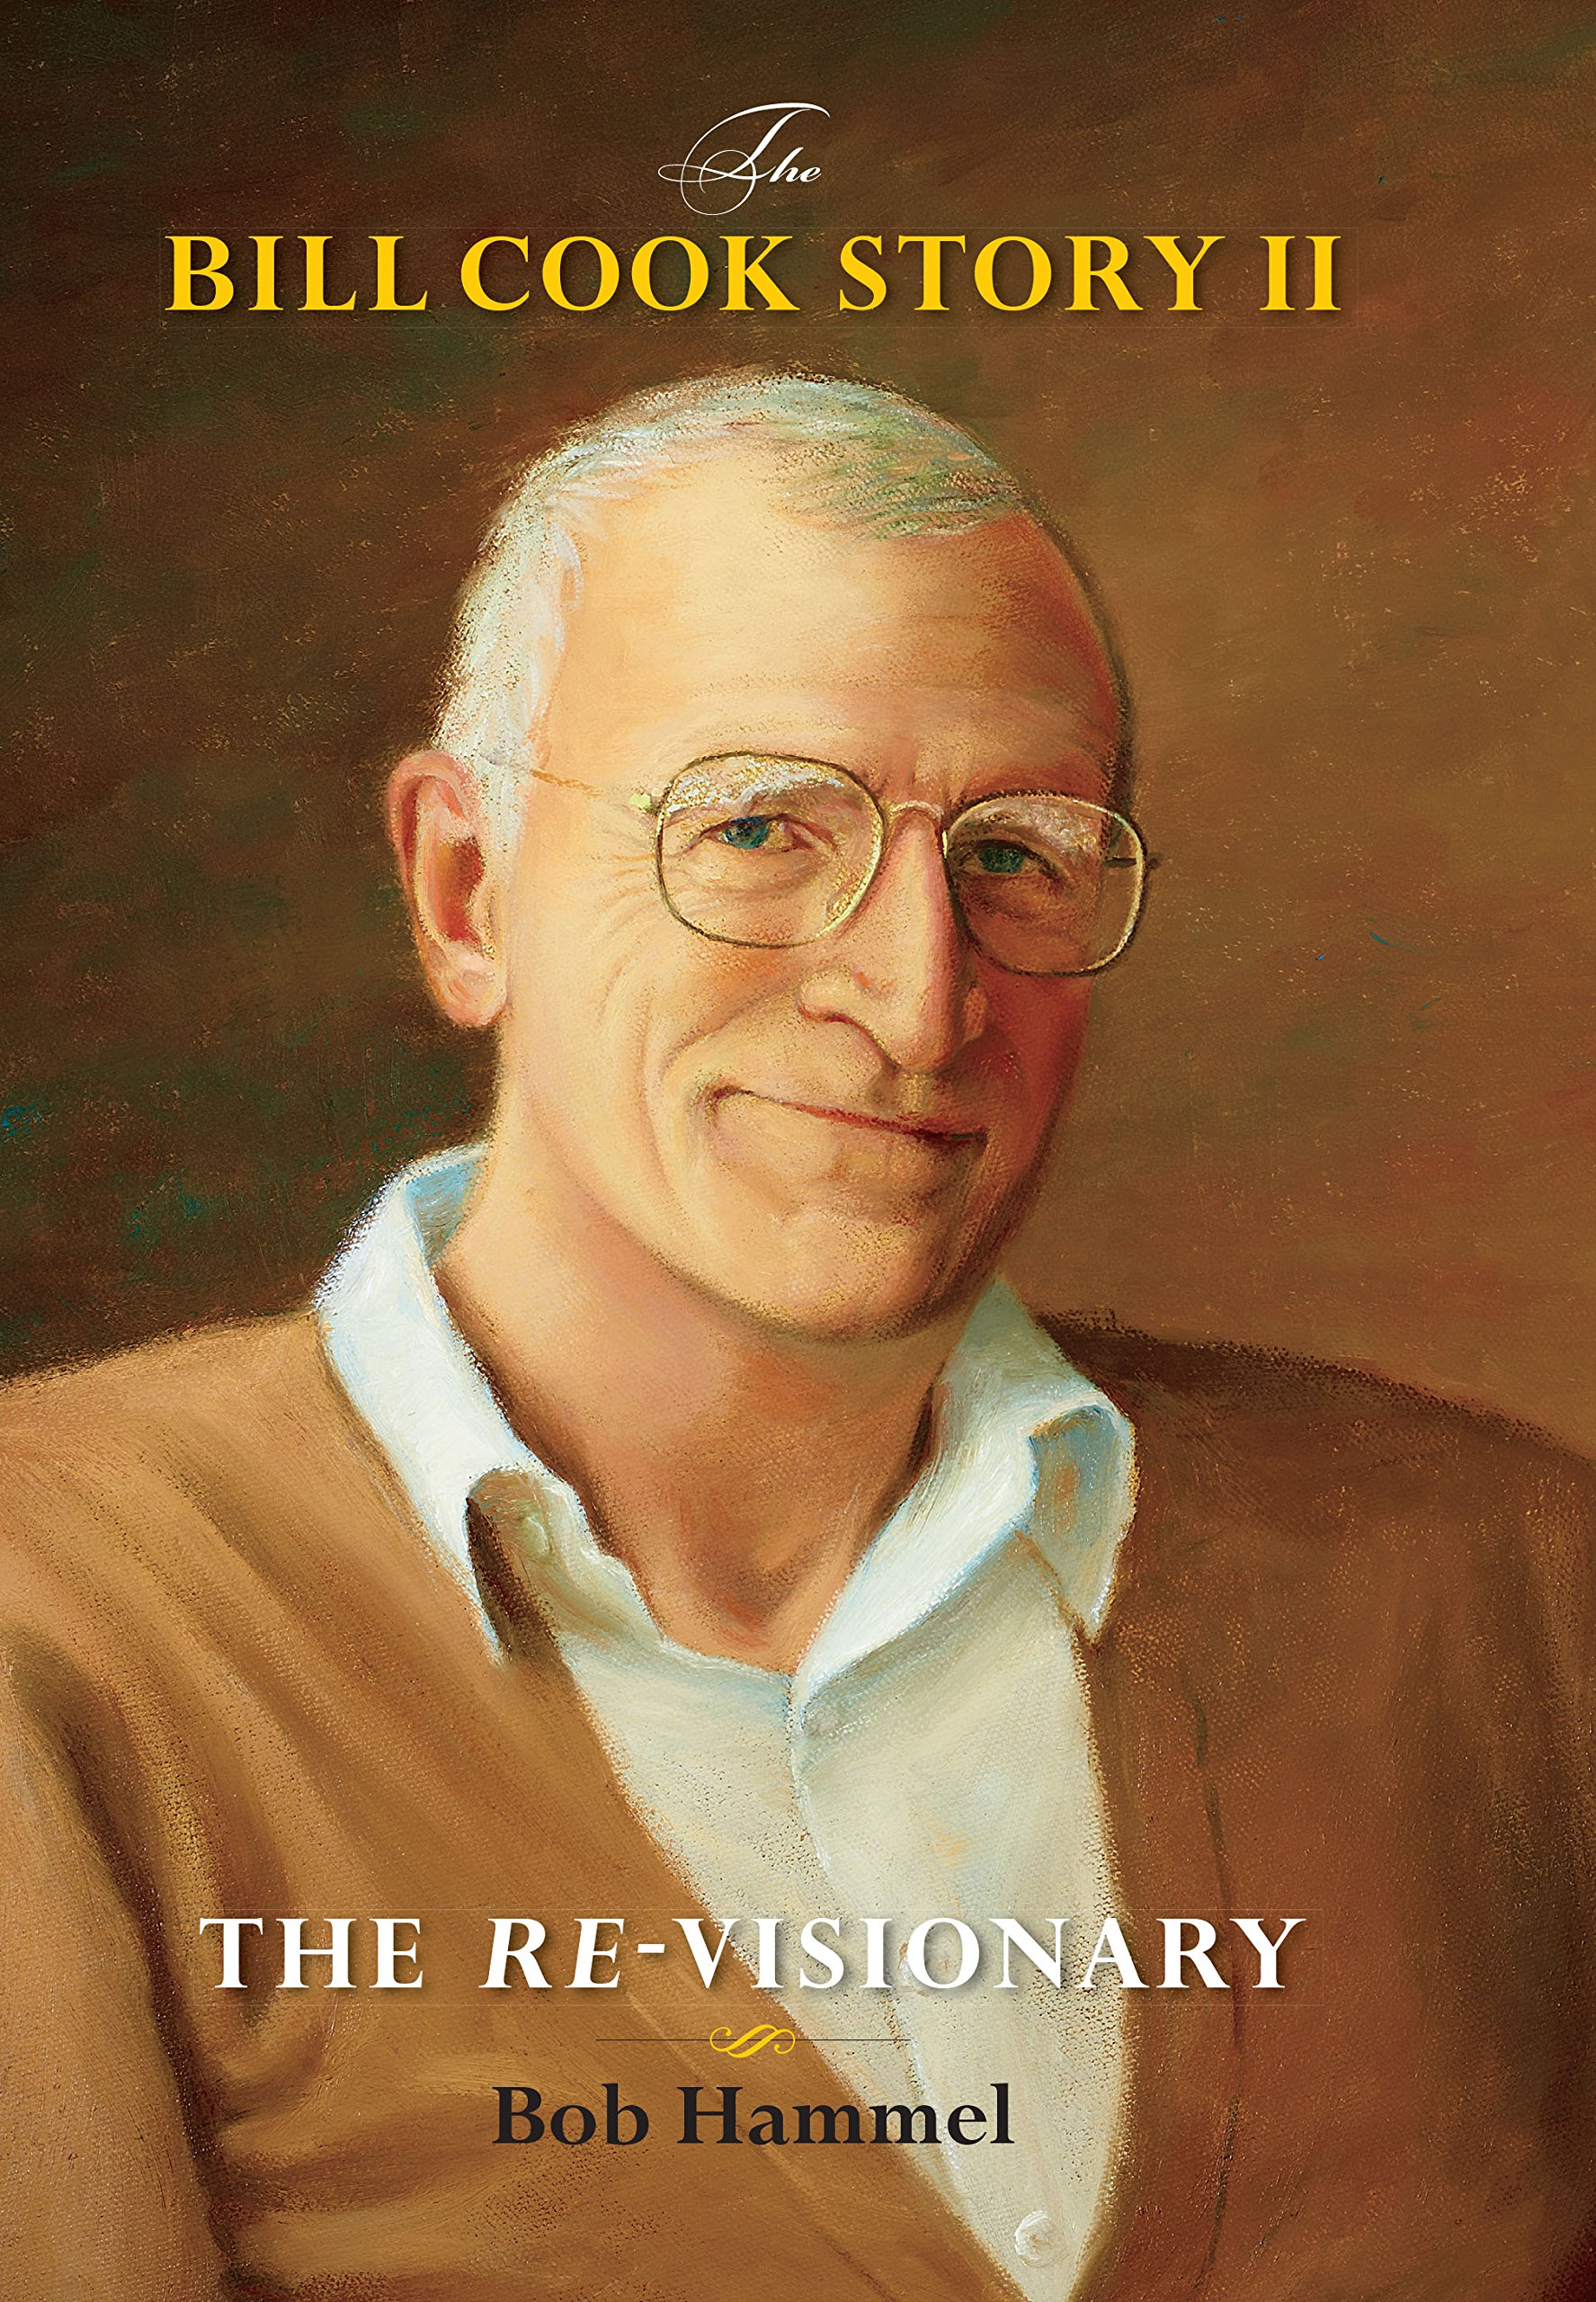 Download The Bill Cook Story II: The Re-Visionary pdf epub